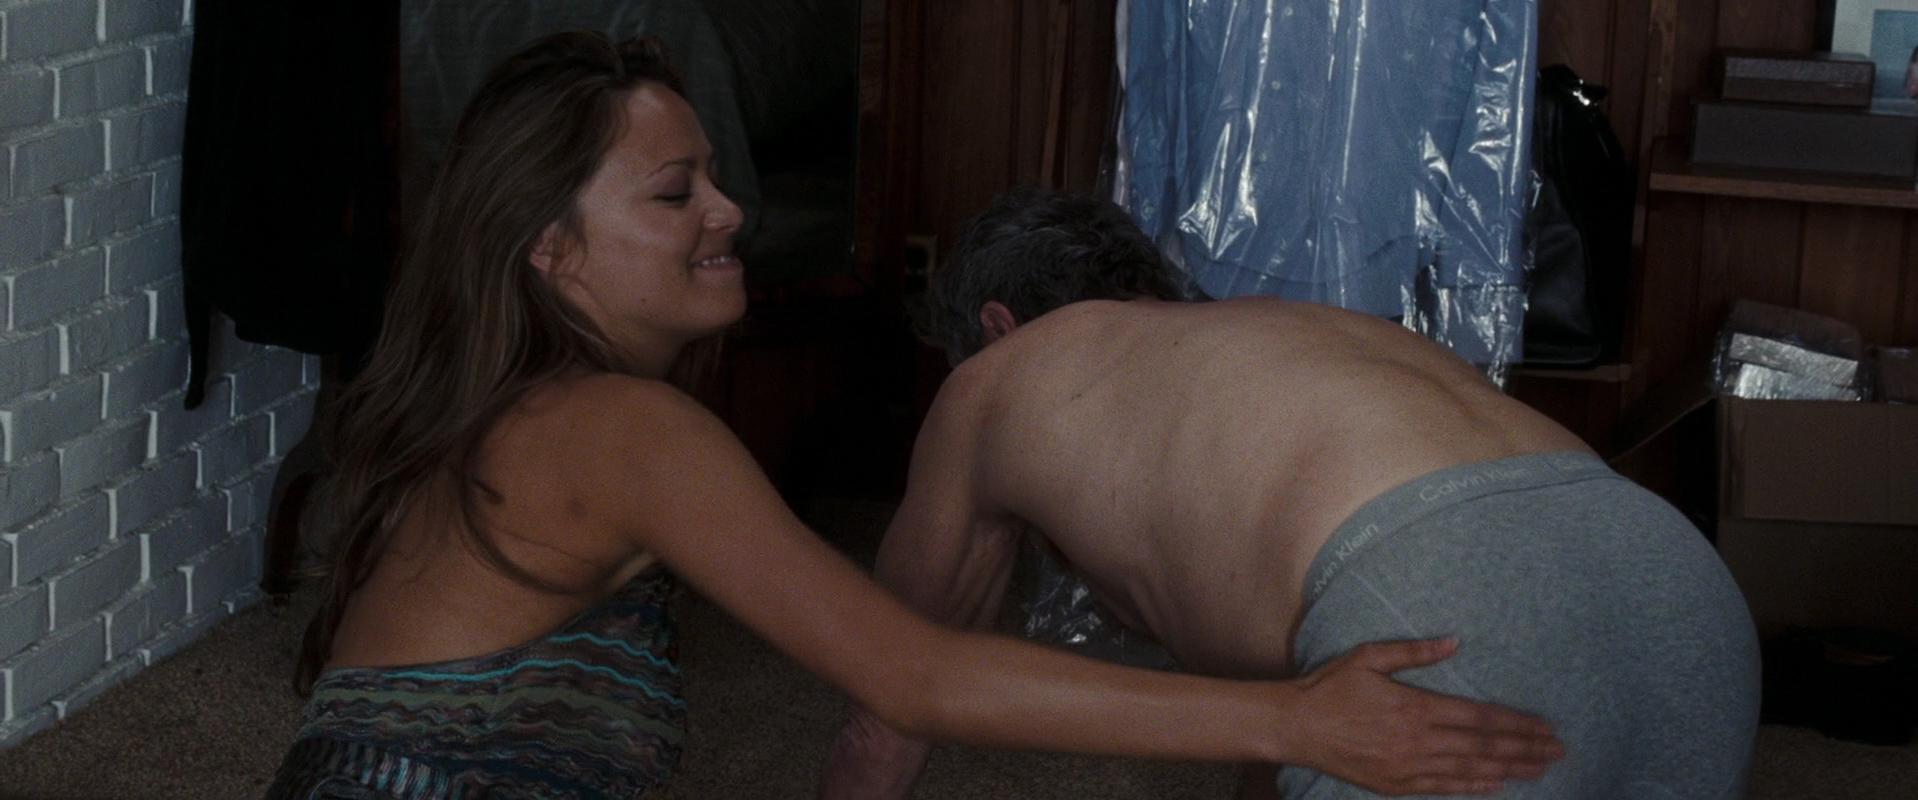 Love moon bloodgood boob fuck that's hot!